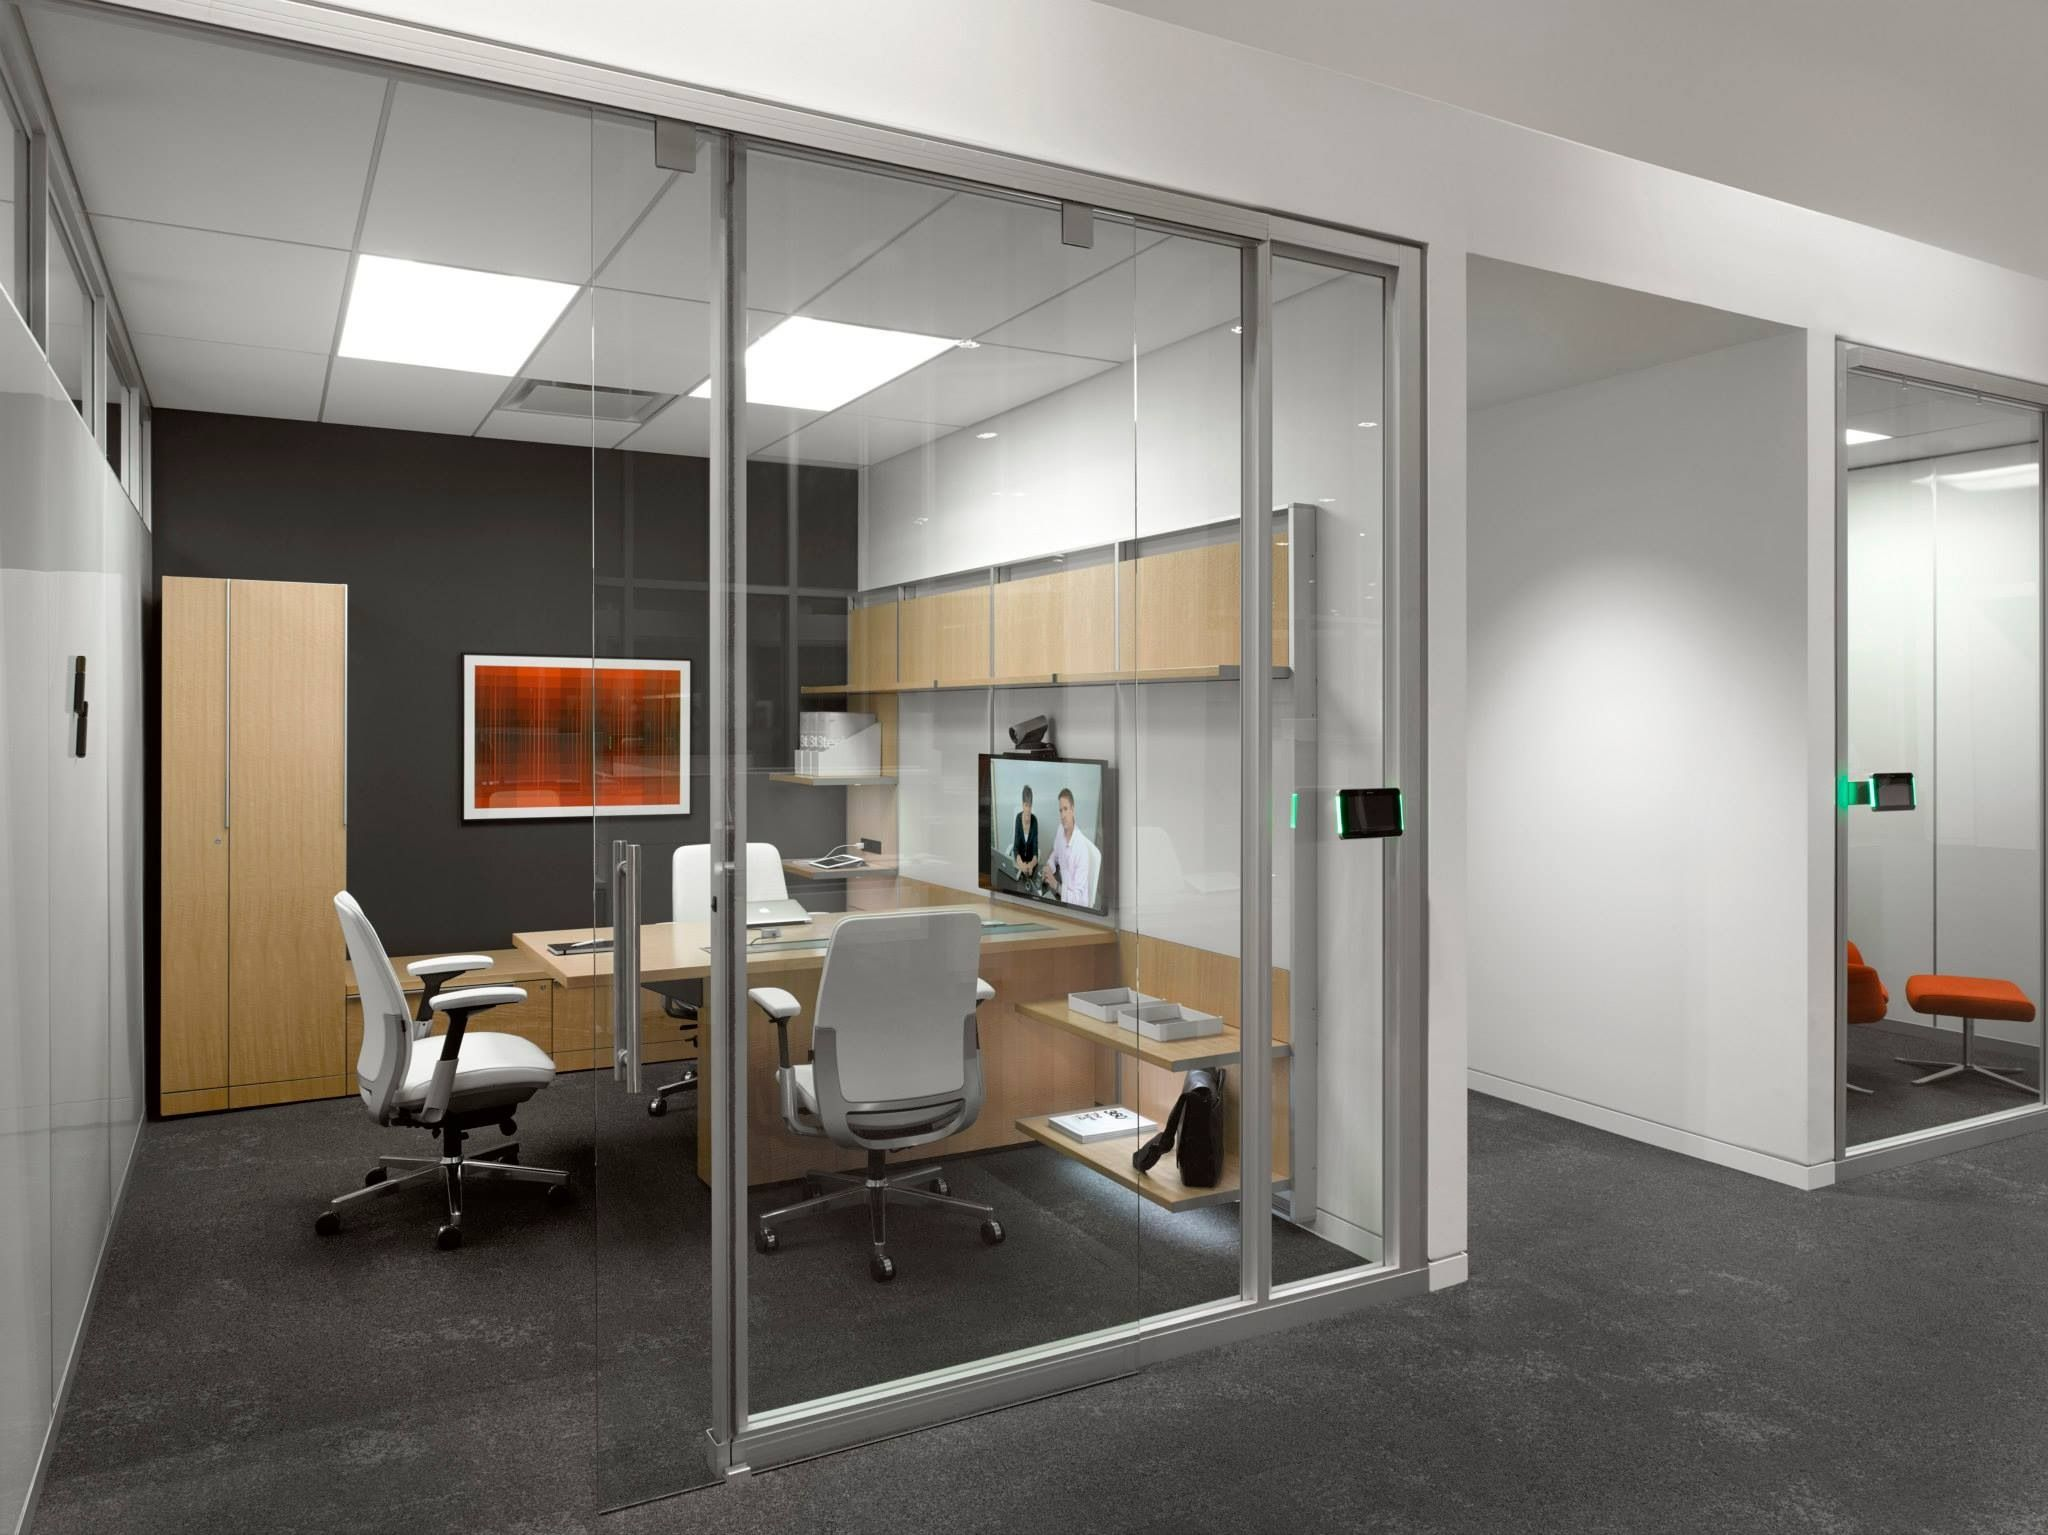 private office design. Steelcase - Private Office Light Wood Furniture Dark Accent Wall And Carpet Design I